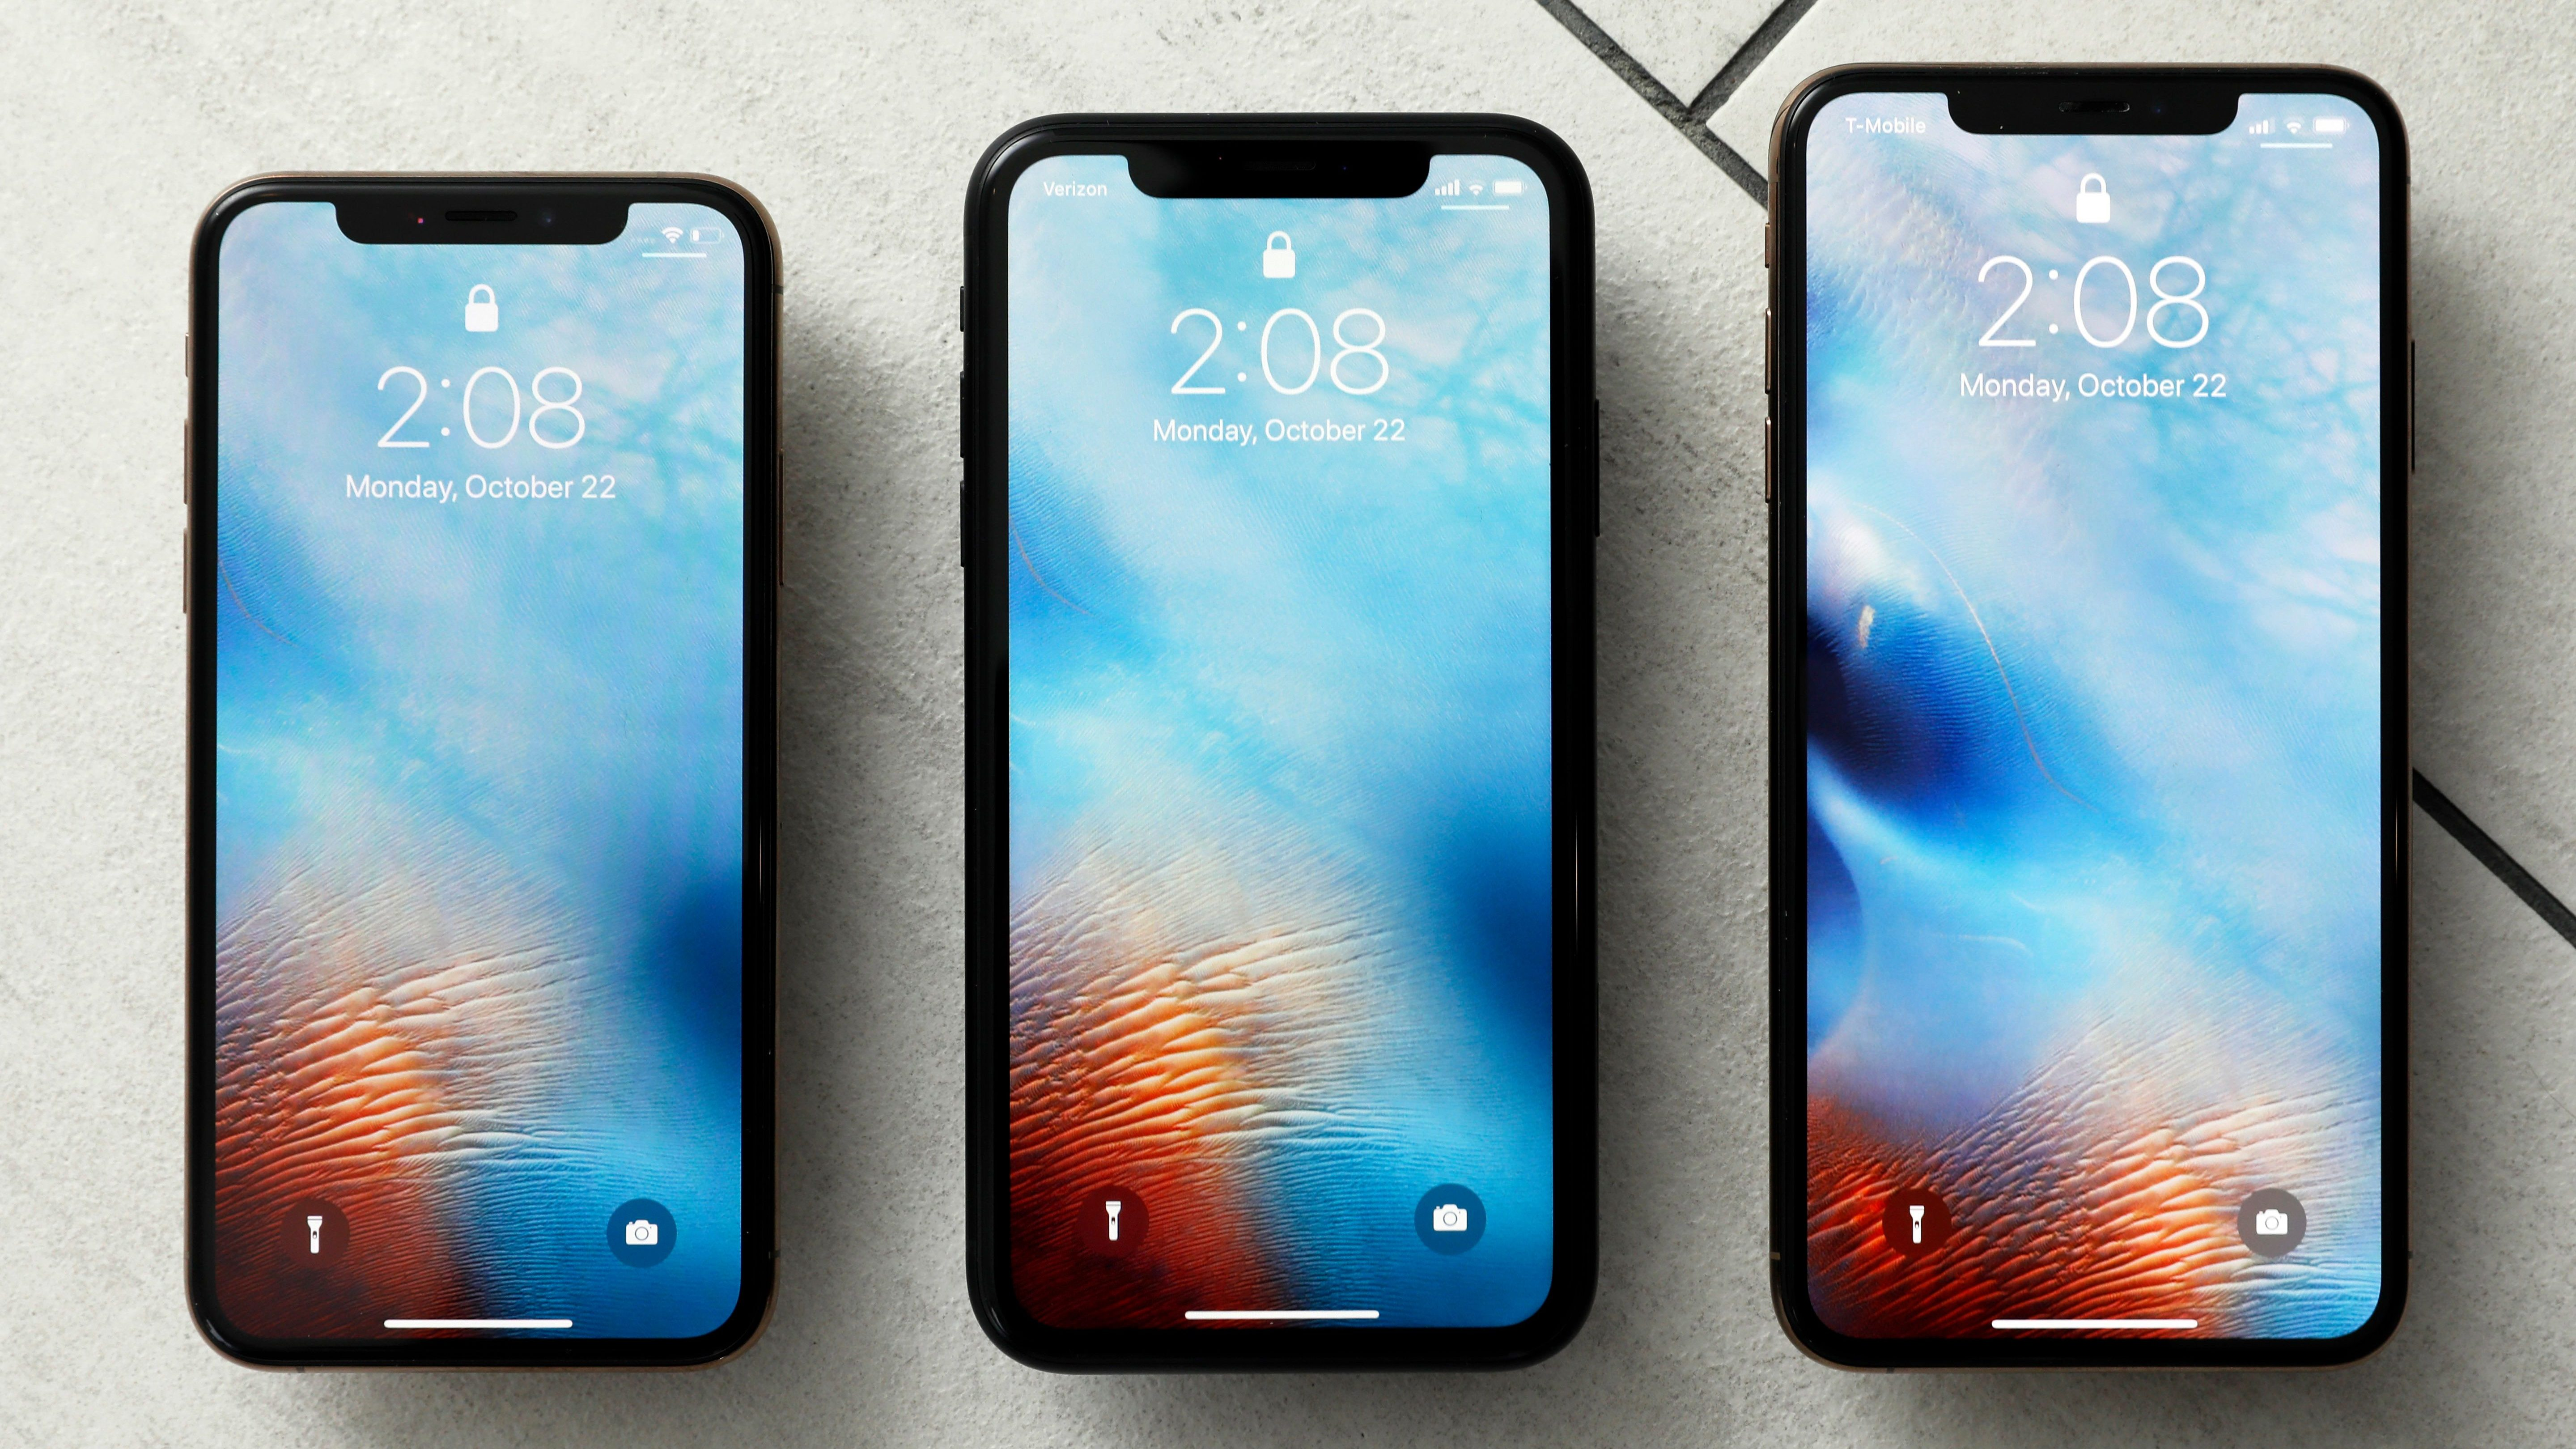 The iPhone Xr seems to be having the same issues as the 5c